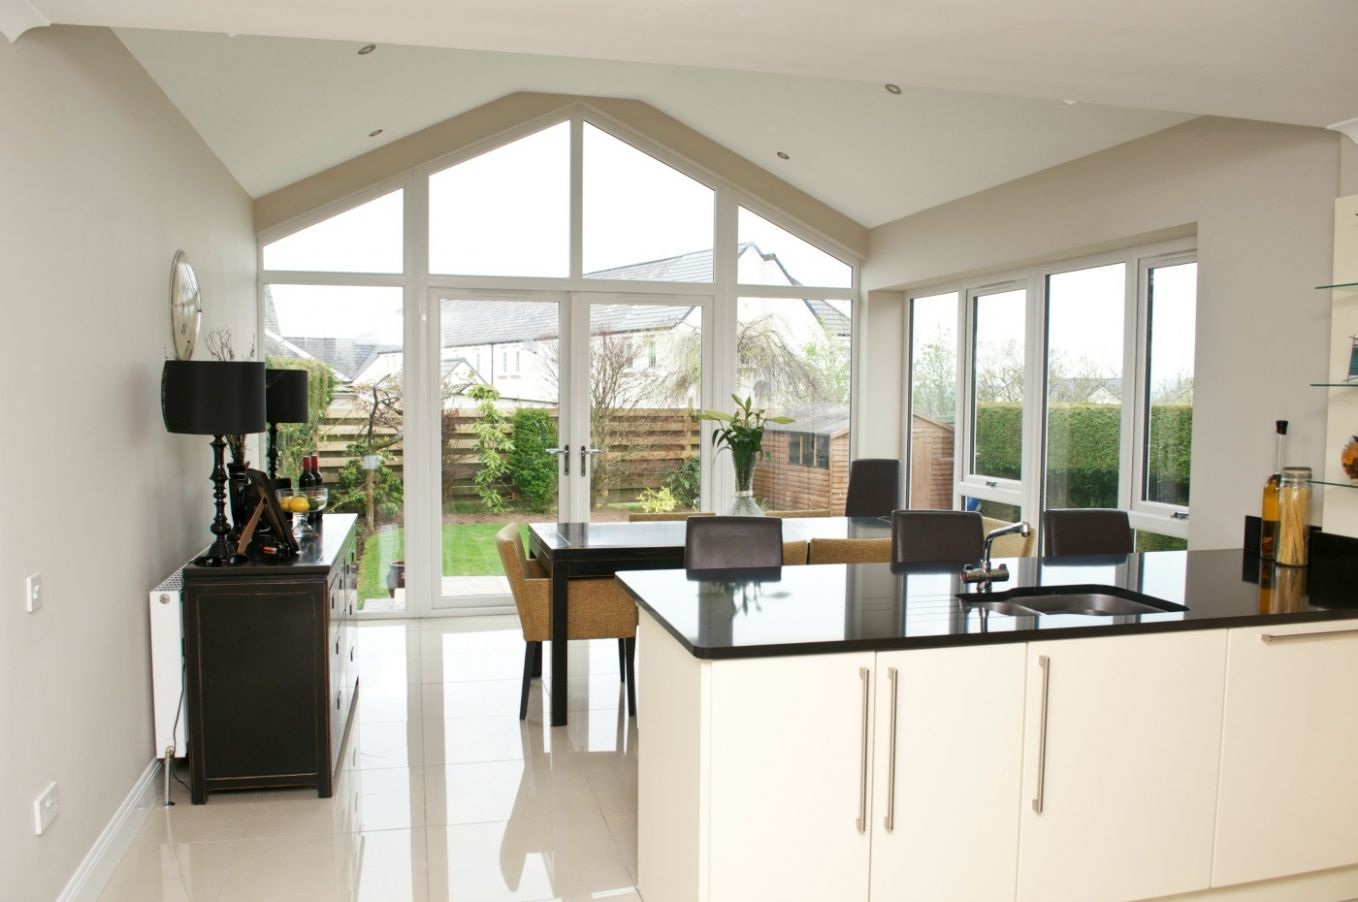 Bespoke Sunrooms in Scotland | CSJ - Central Scotland Joinery